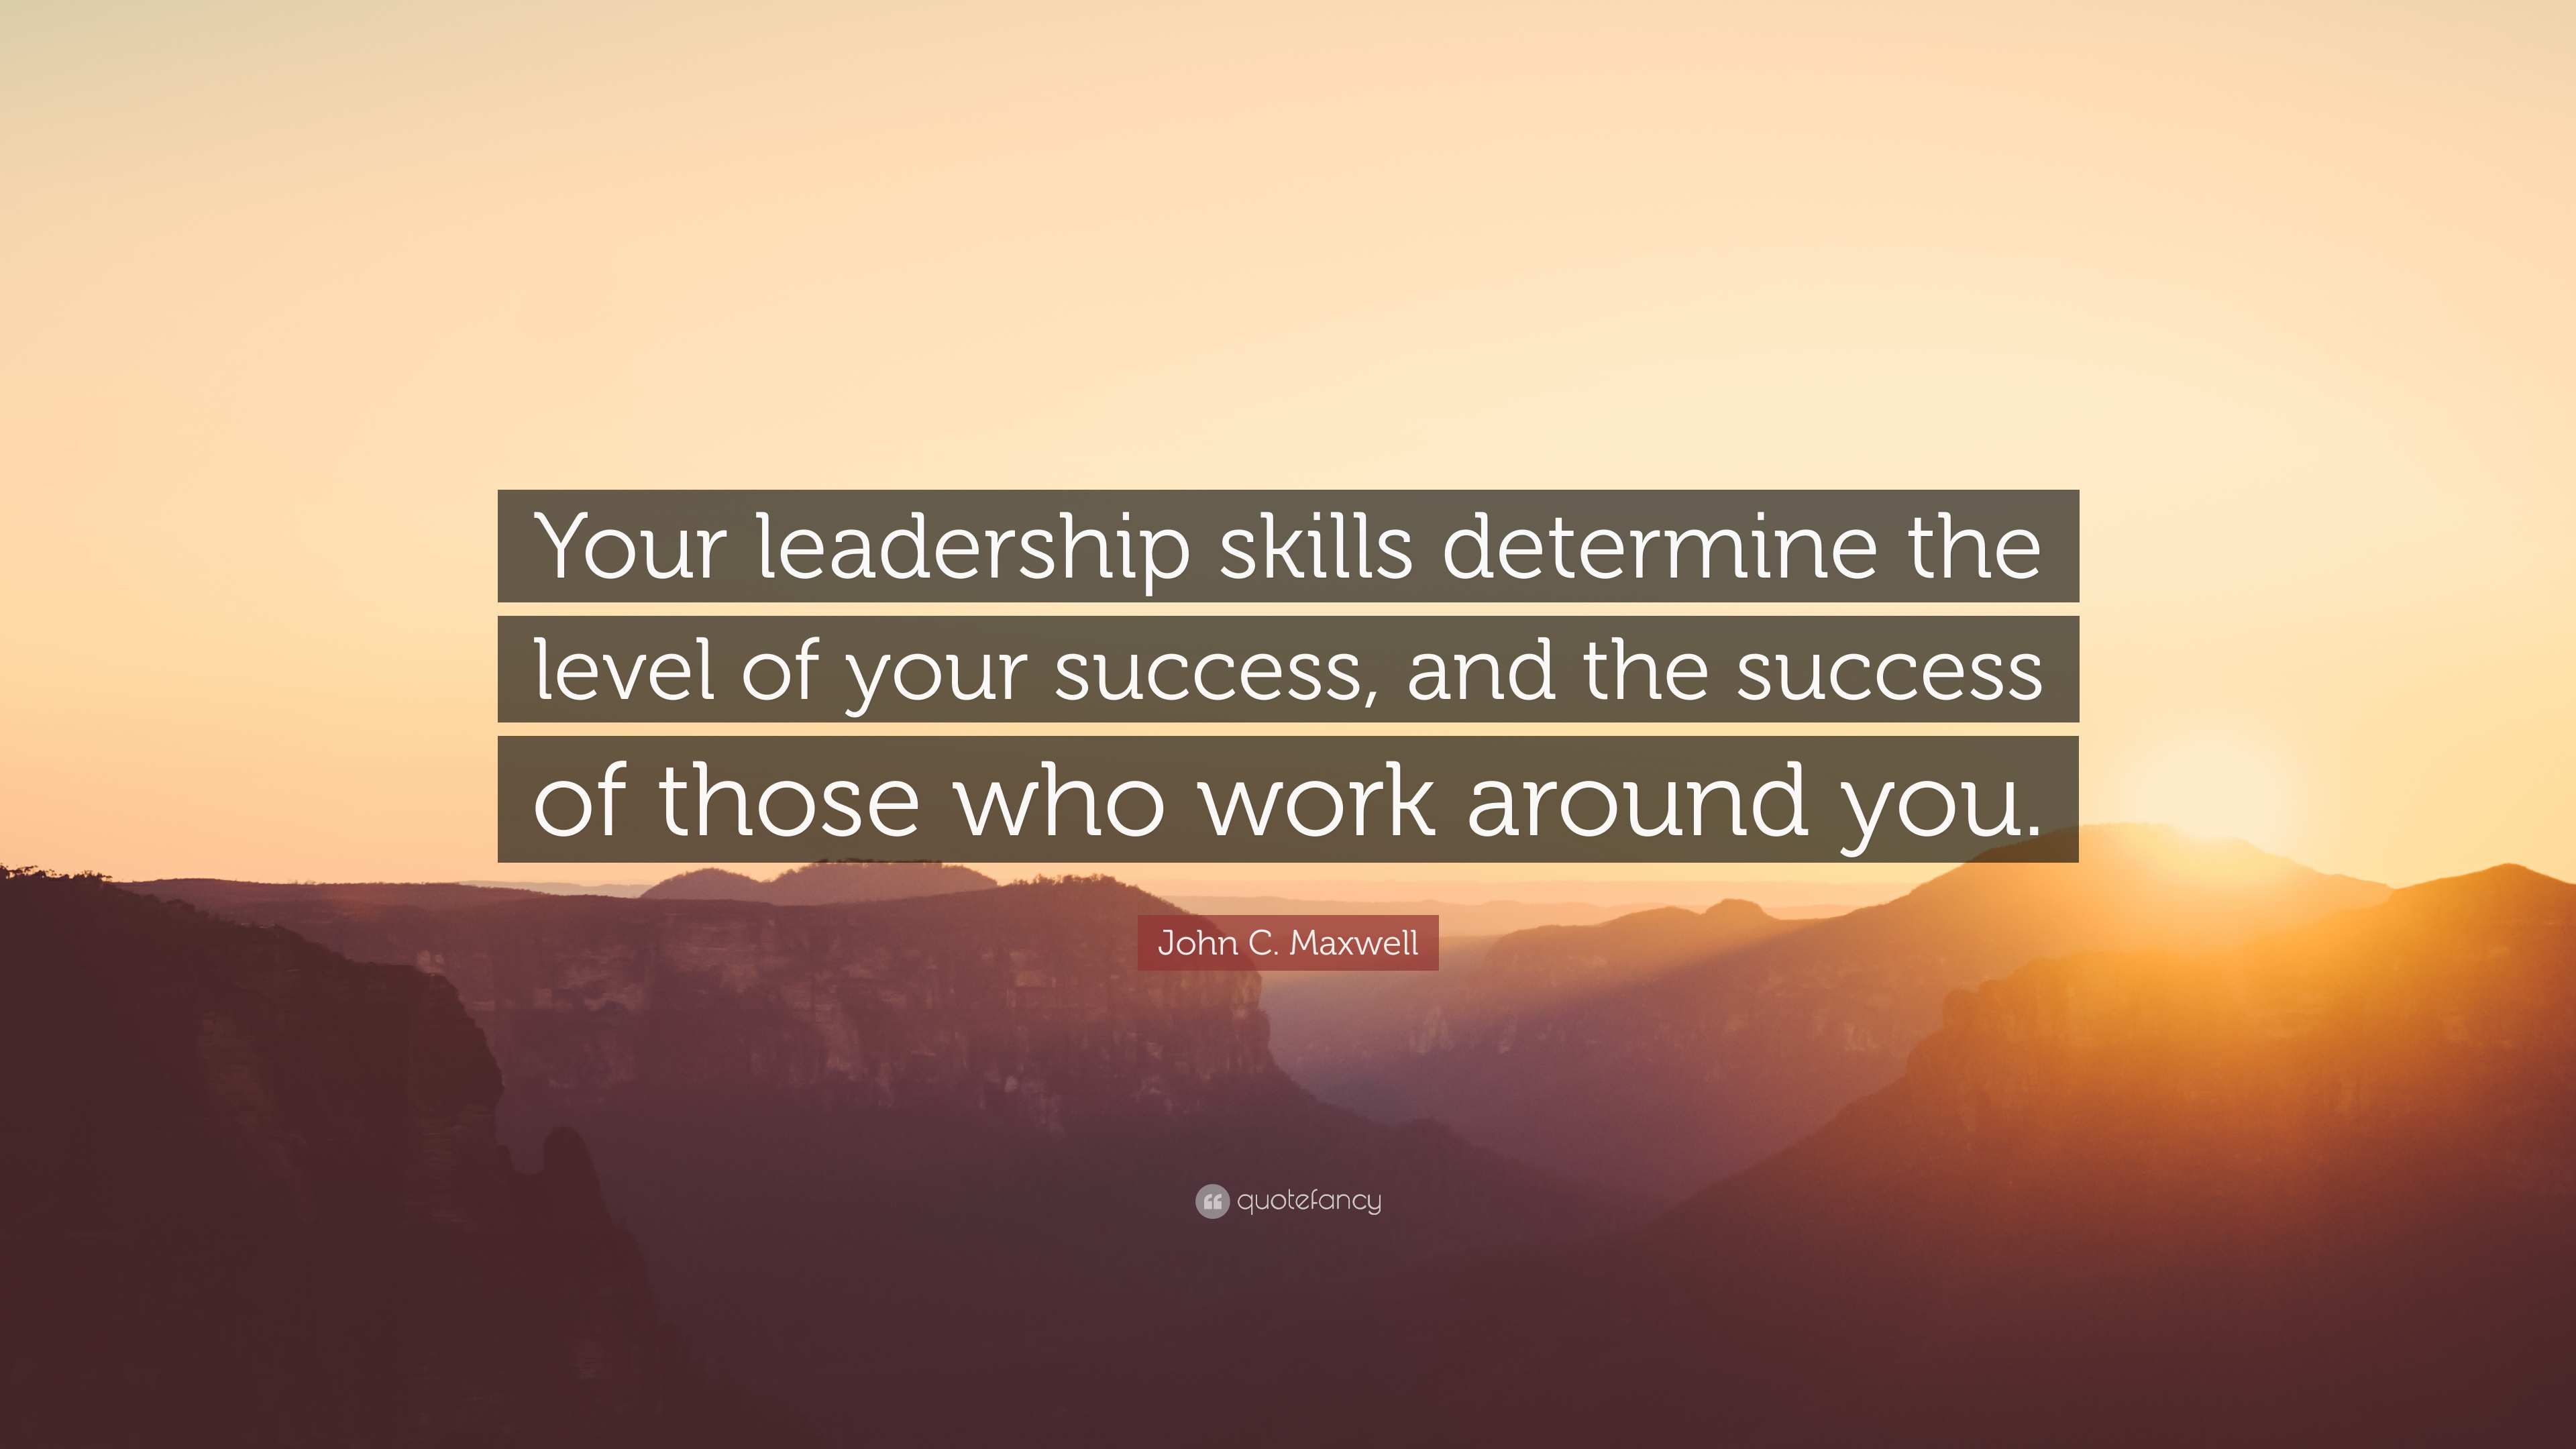 john c maxwell quote your leadership skills determine the level